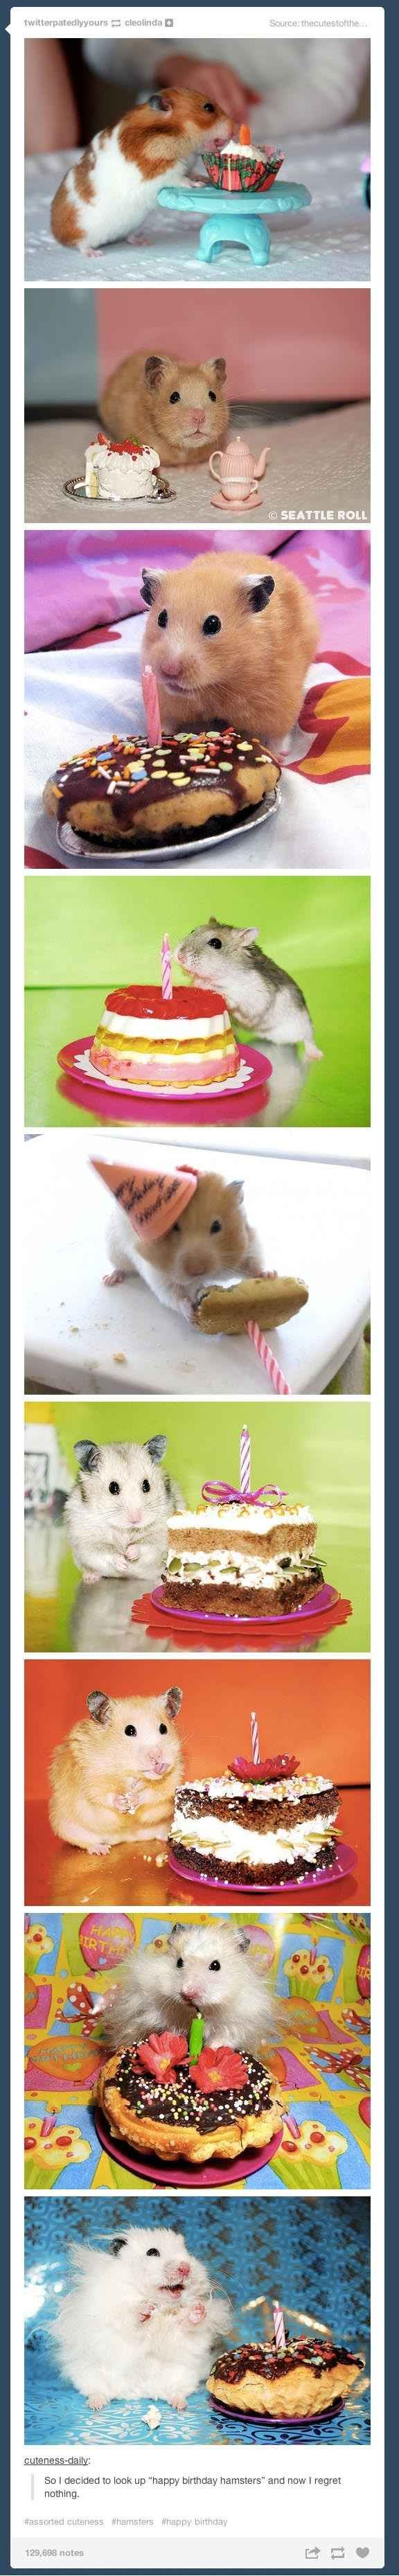 "And perhaps the most satisfying search of all: ""So I decided to look up 'happy birthday hamsters' and now I regret nothing."" 